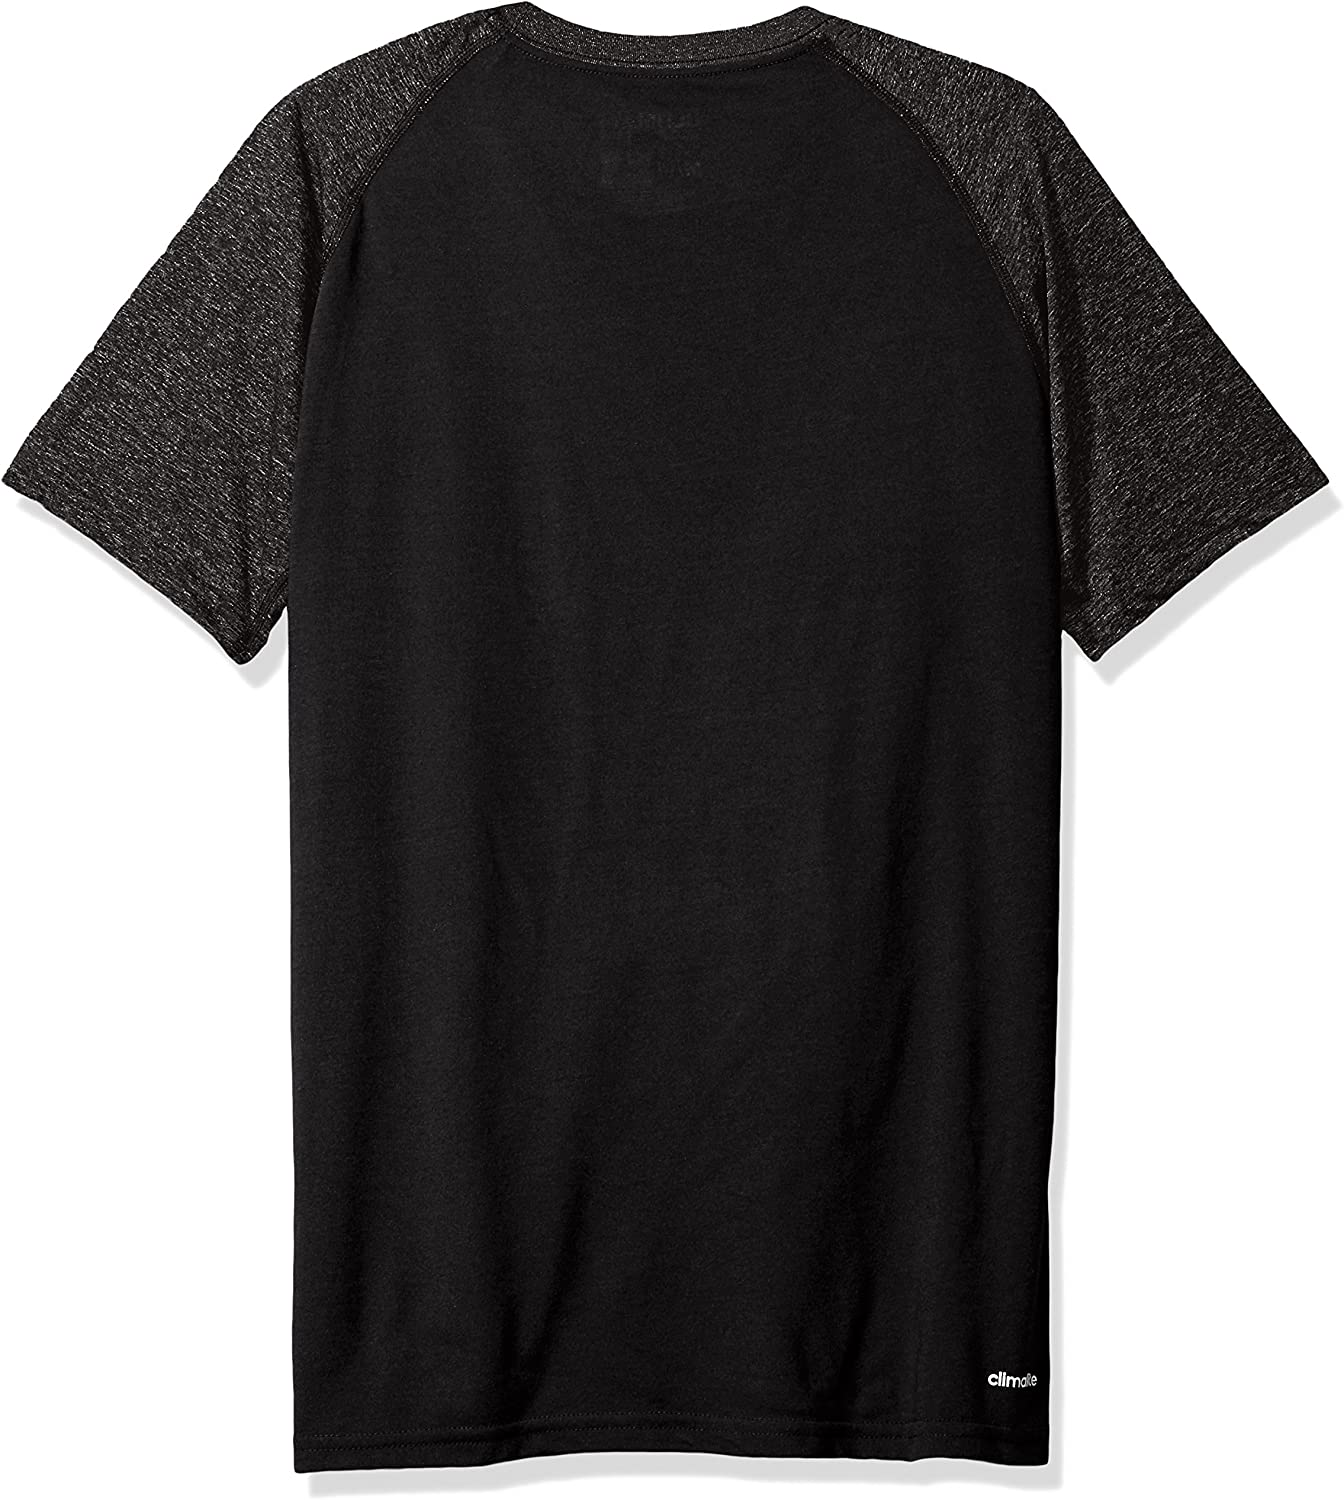 adidas Mens Reflective Authentic Climalite Ultimate S//S Tee